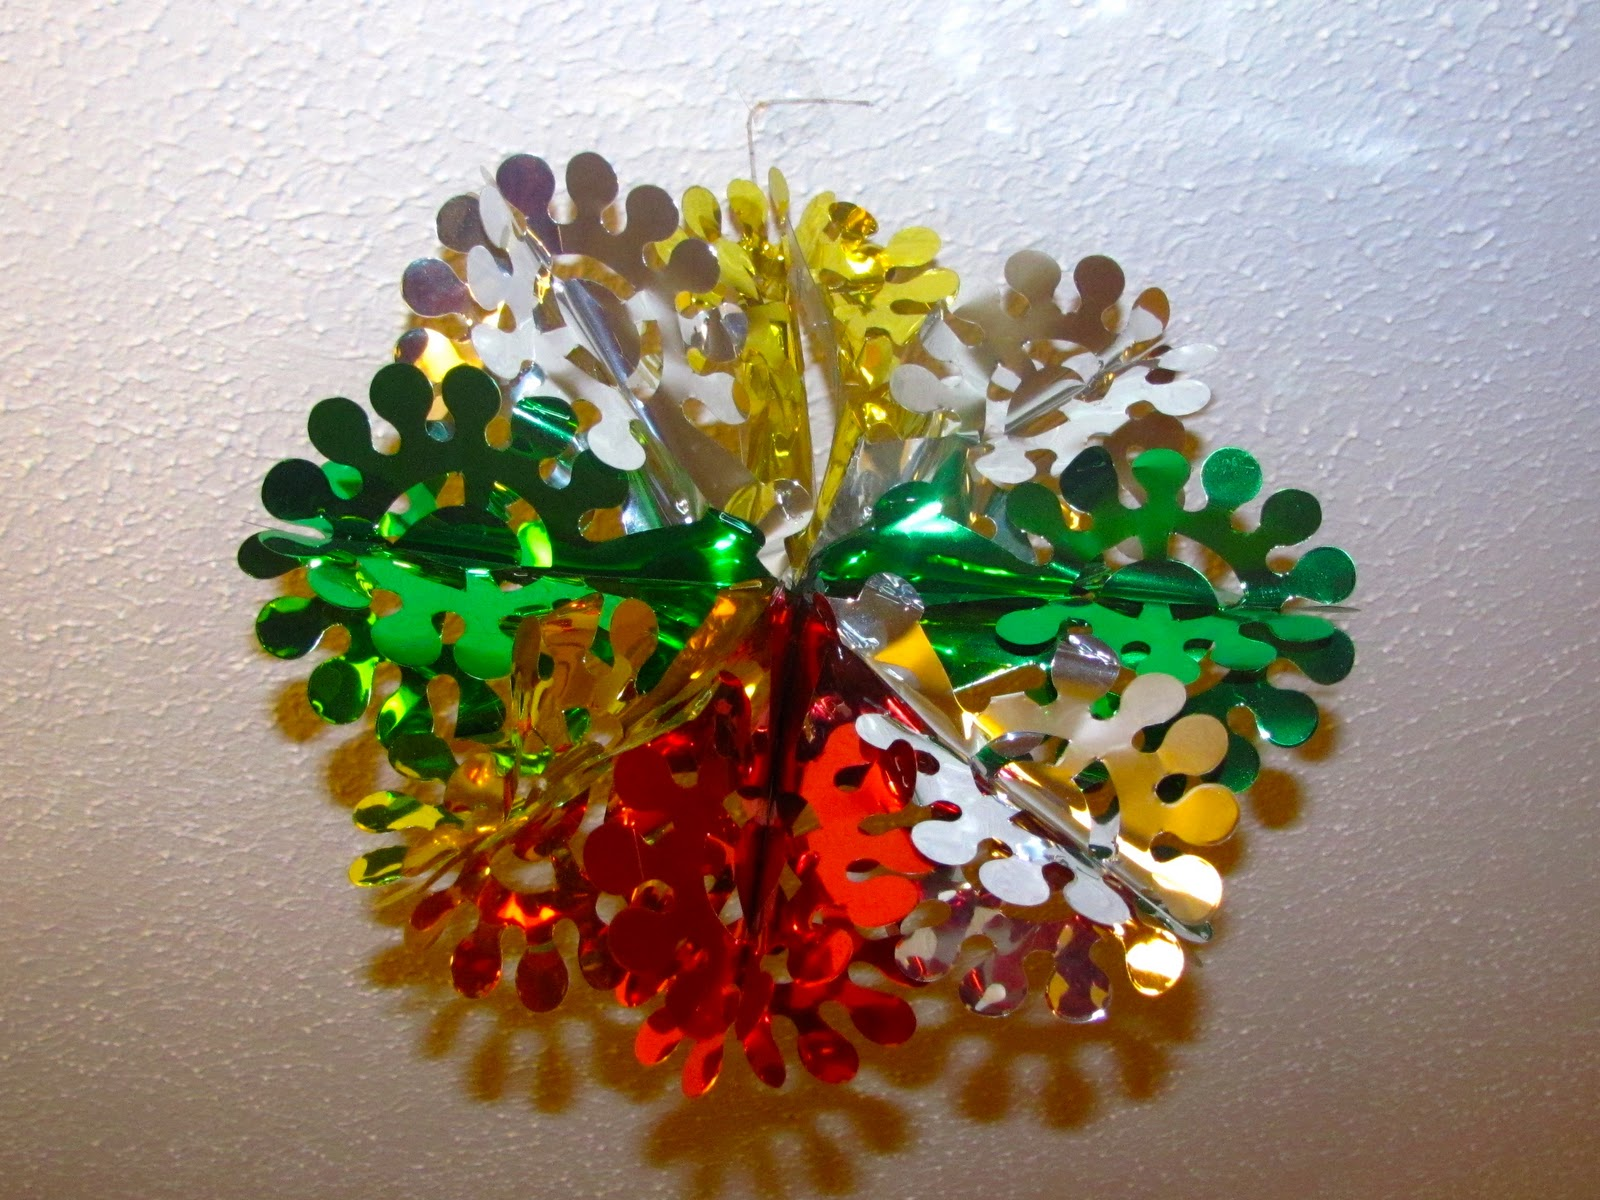 old xmas decorations – My Web Value